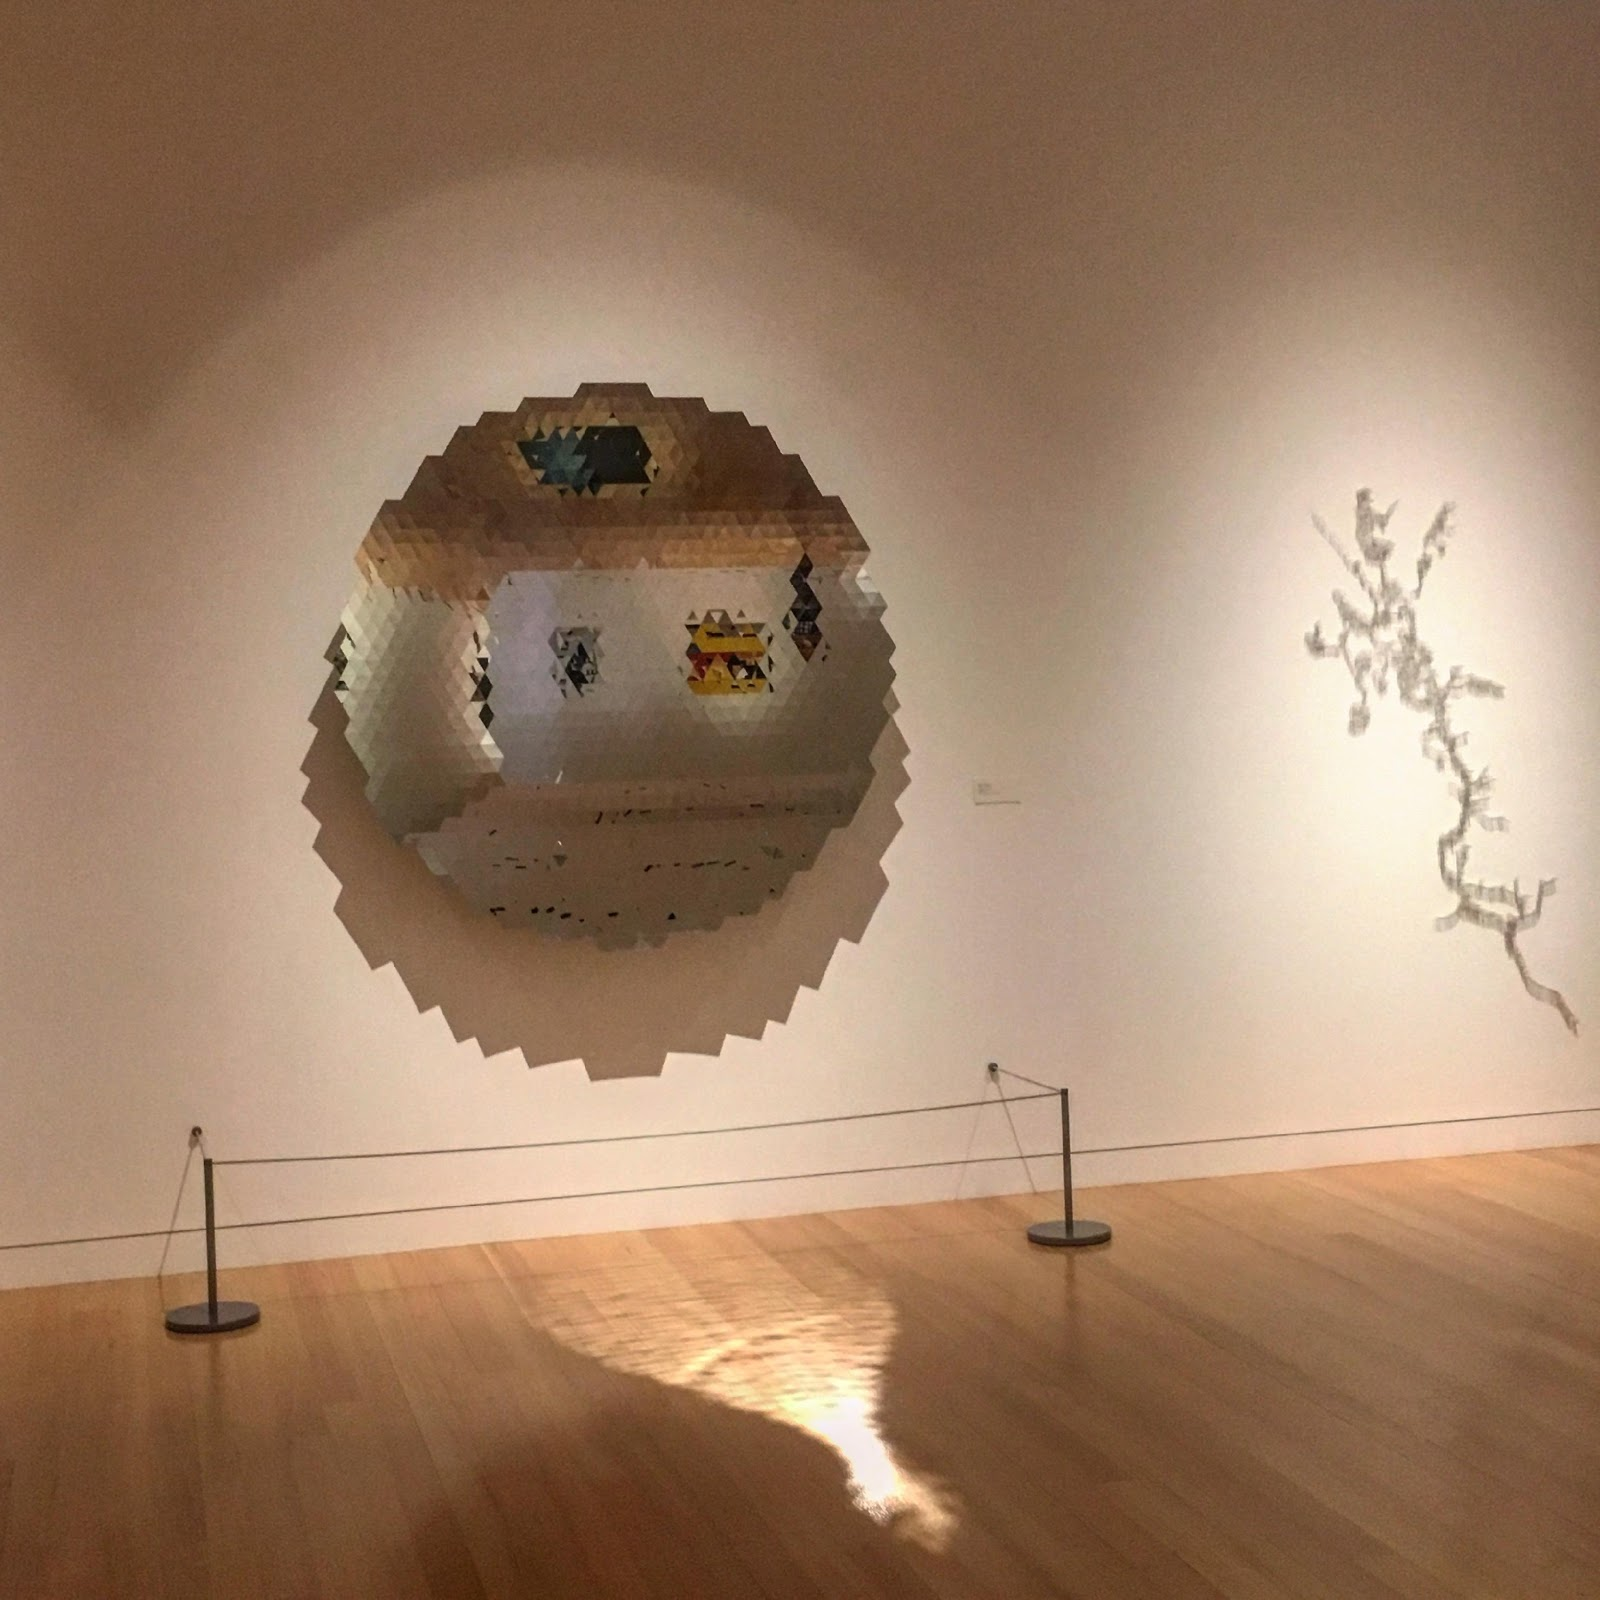 Image of  Untitled , 2010 by Anish Kapoor. Colby College Museum of Art. Photo by Poppy Gauss